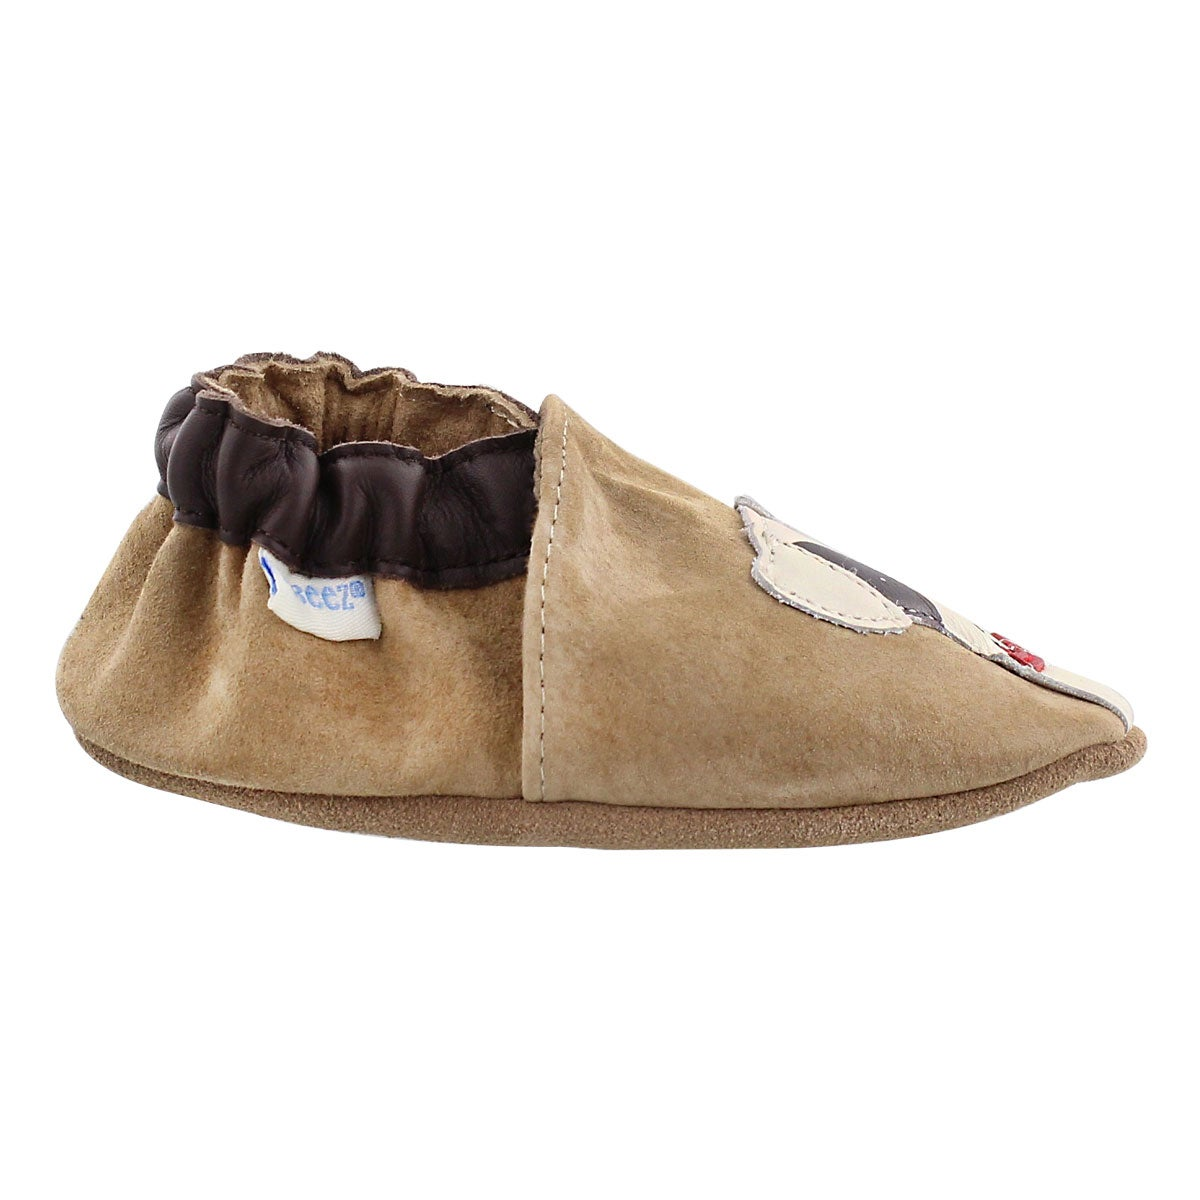 Infs Doggy Dale taupe soft sole slipper